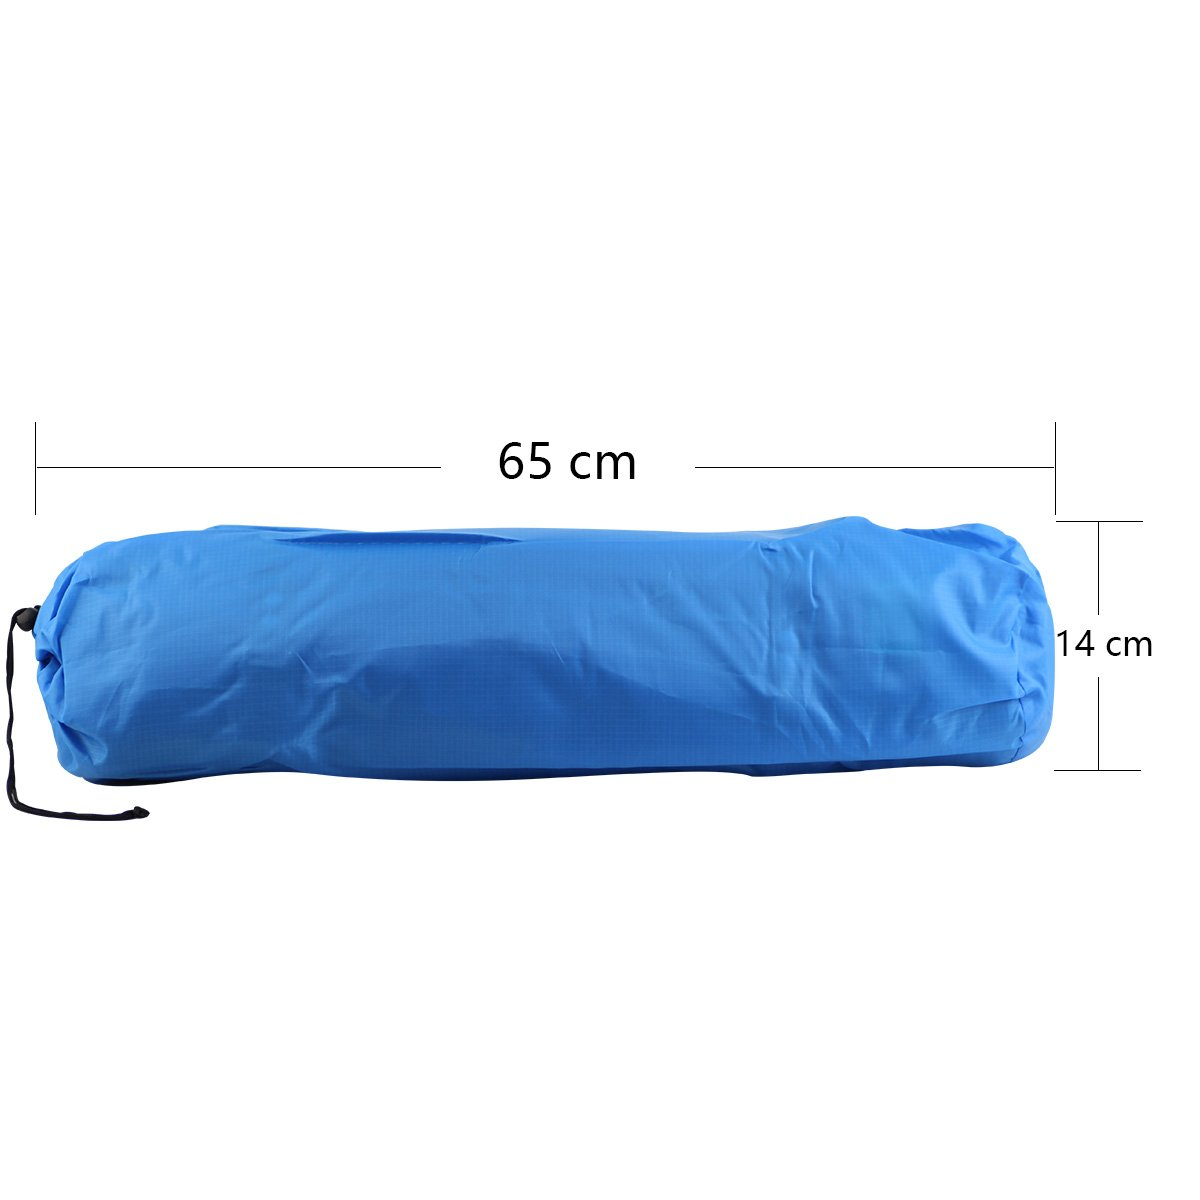 Mattress for Tent in Camping Hiking and Outdoor Activities Qisan Self Inflating Camping Mat Sleeping Mat with Pillow Portable Sleeping Pad